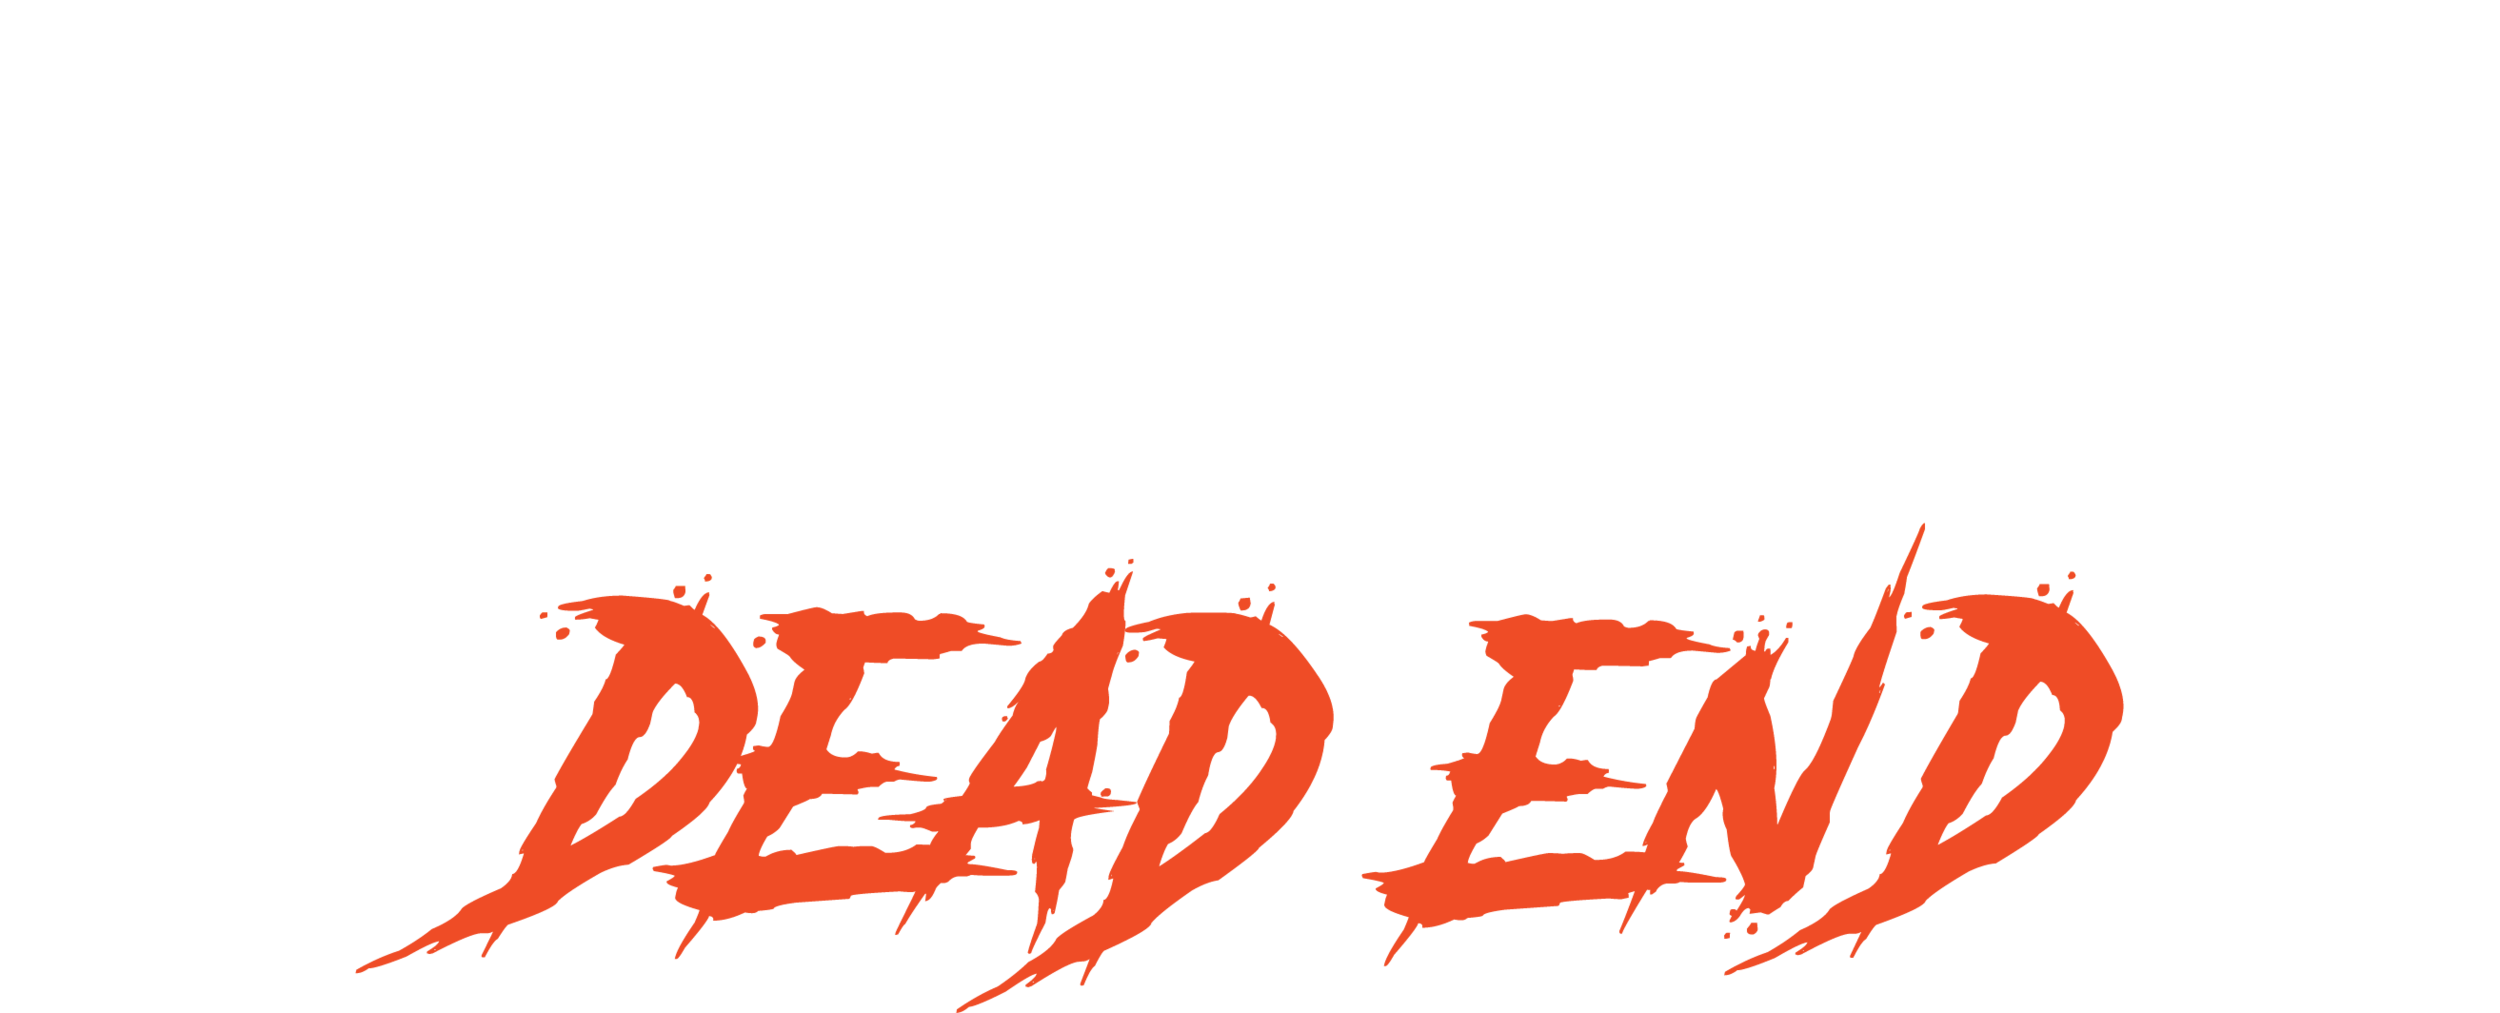 mtl dead end_fondtransparent.png